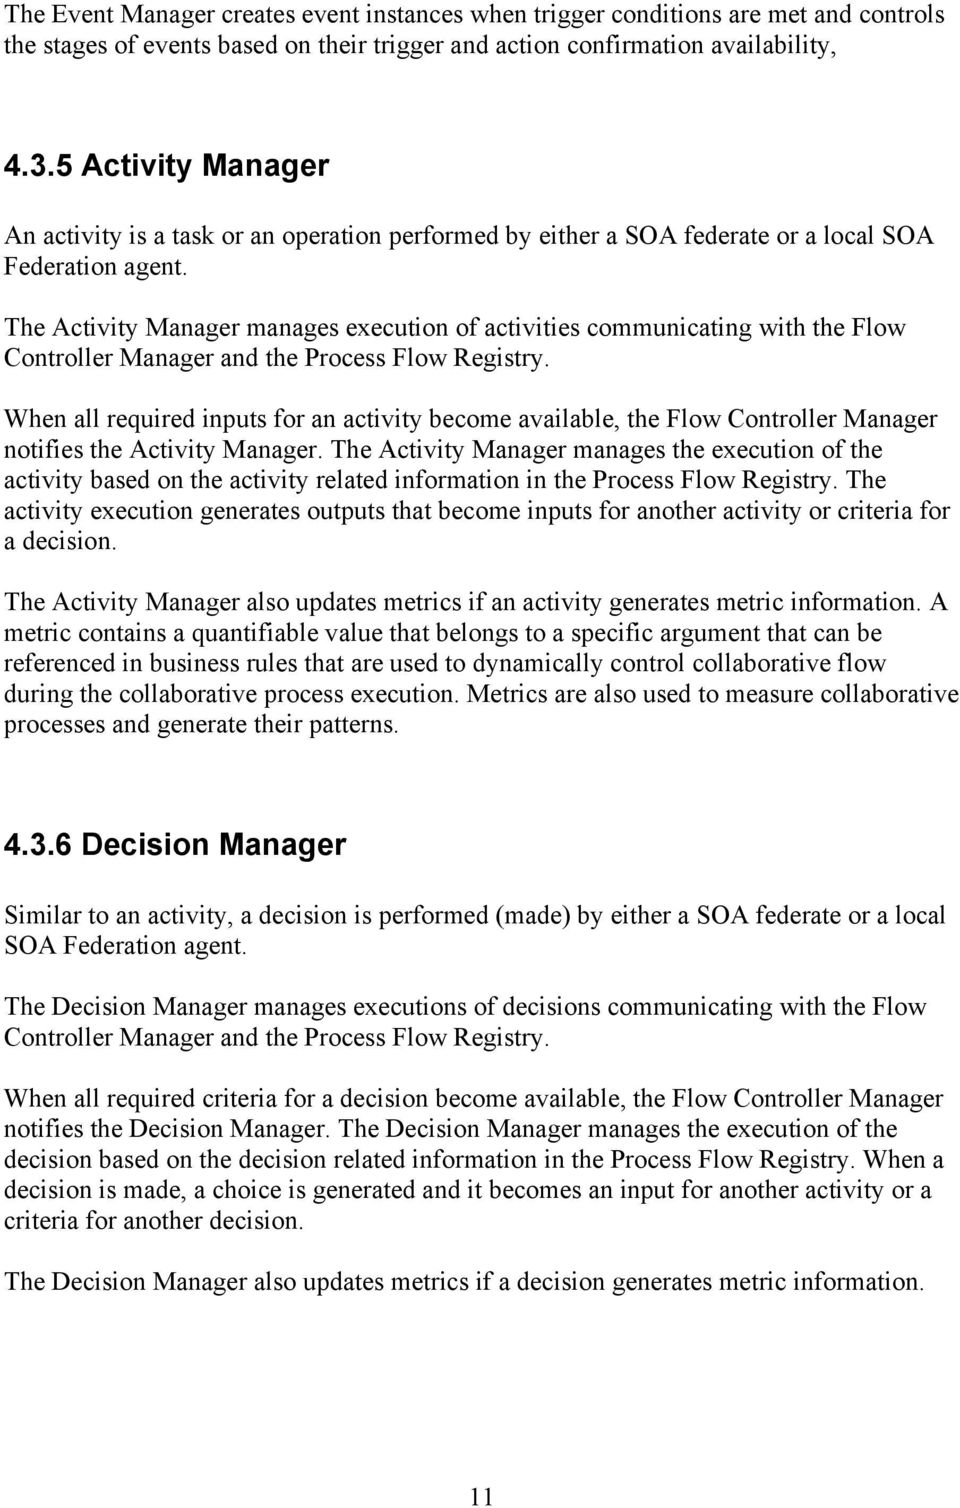 The Activity Manager manages execution of activities communicating with the Flow Controller Manager and the Process Flow Registry.